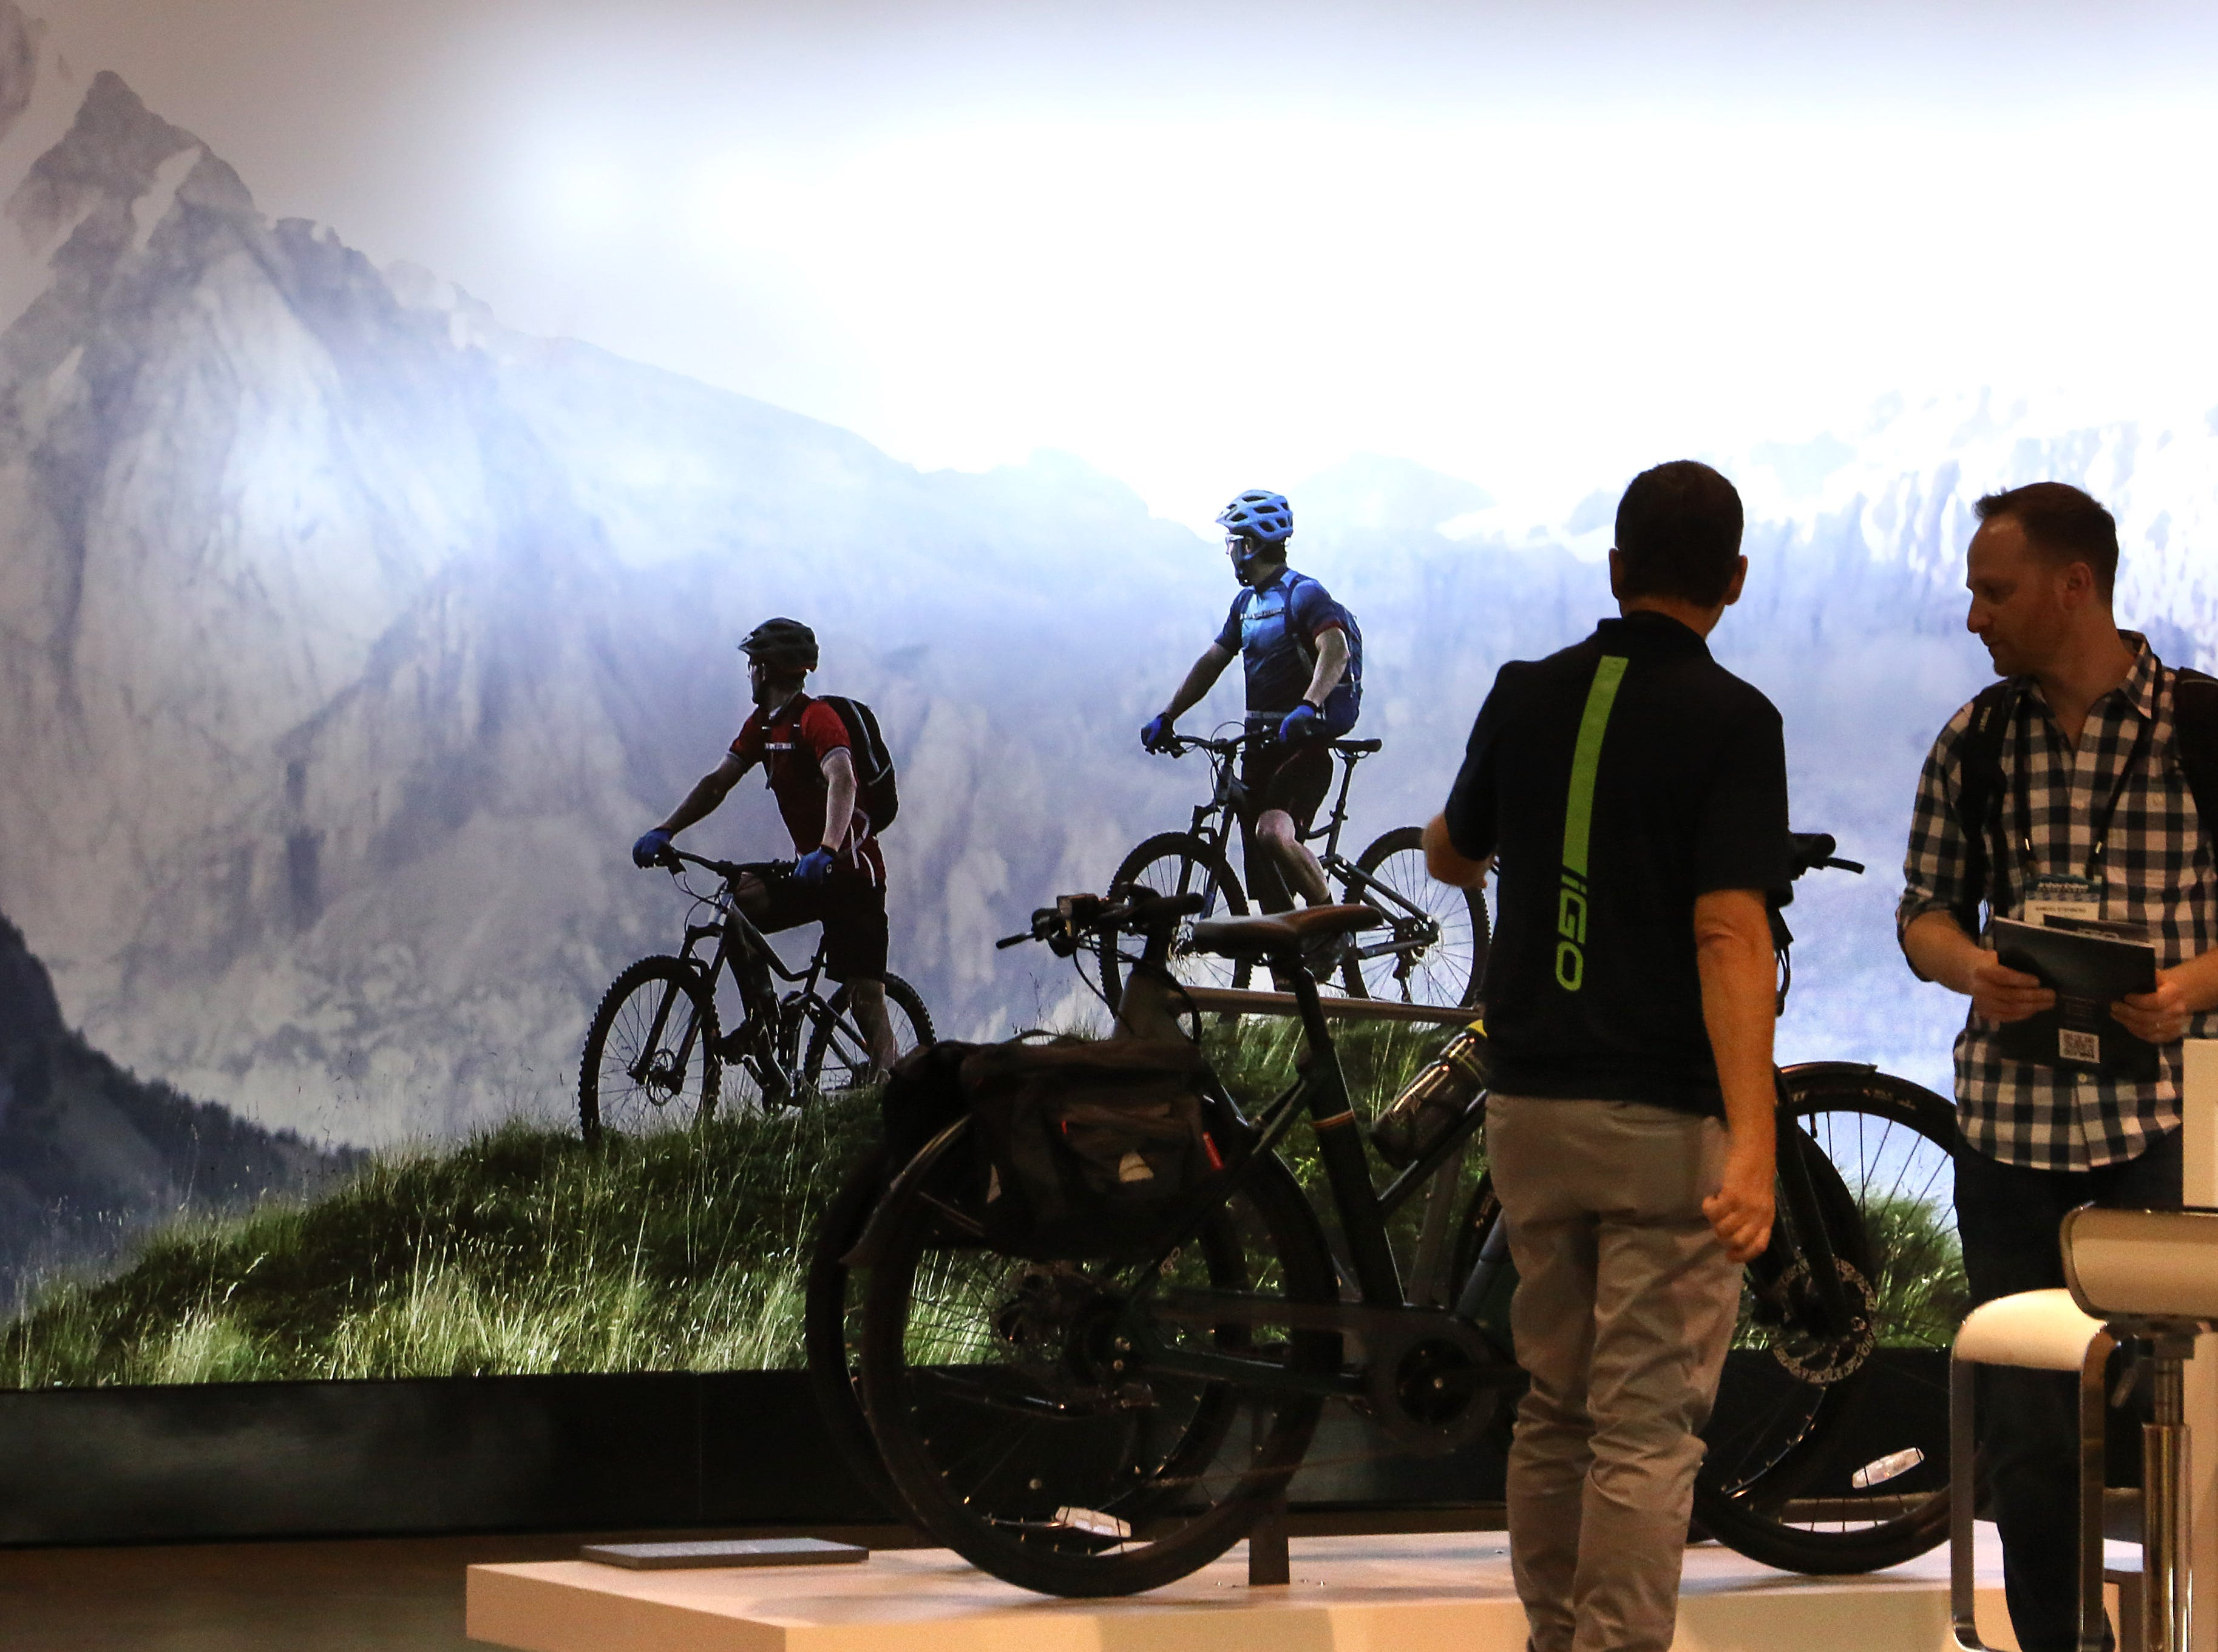 Attendees are seen in front of a mountain bike mural at the Interbike Expo at the Reno-Sparks Convention Center in Reno on Sept. 19, 2018.